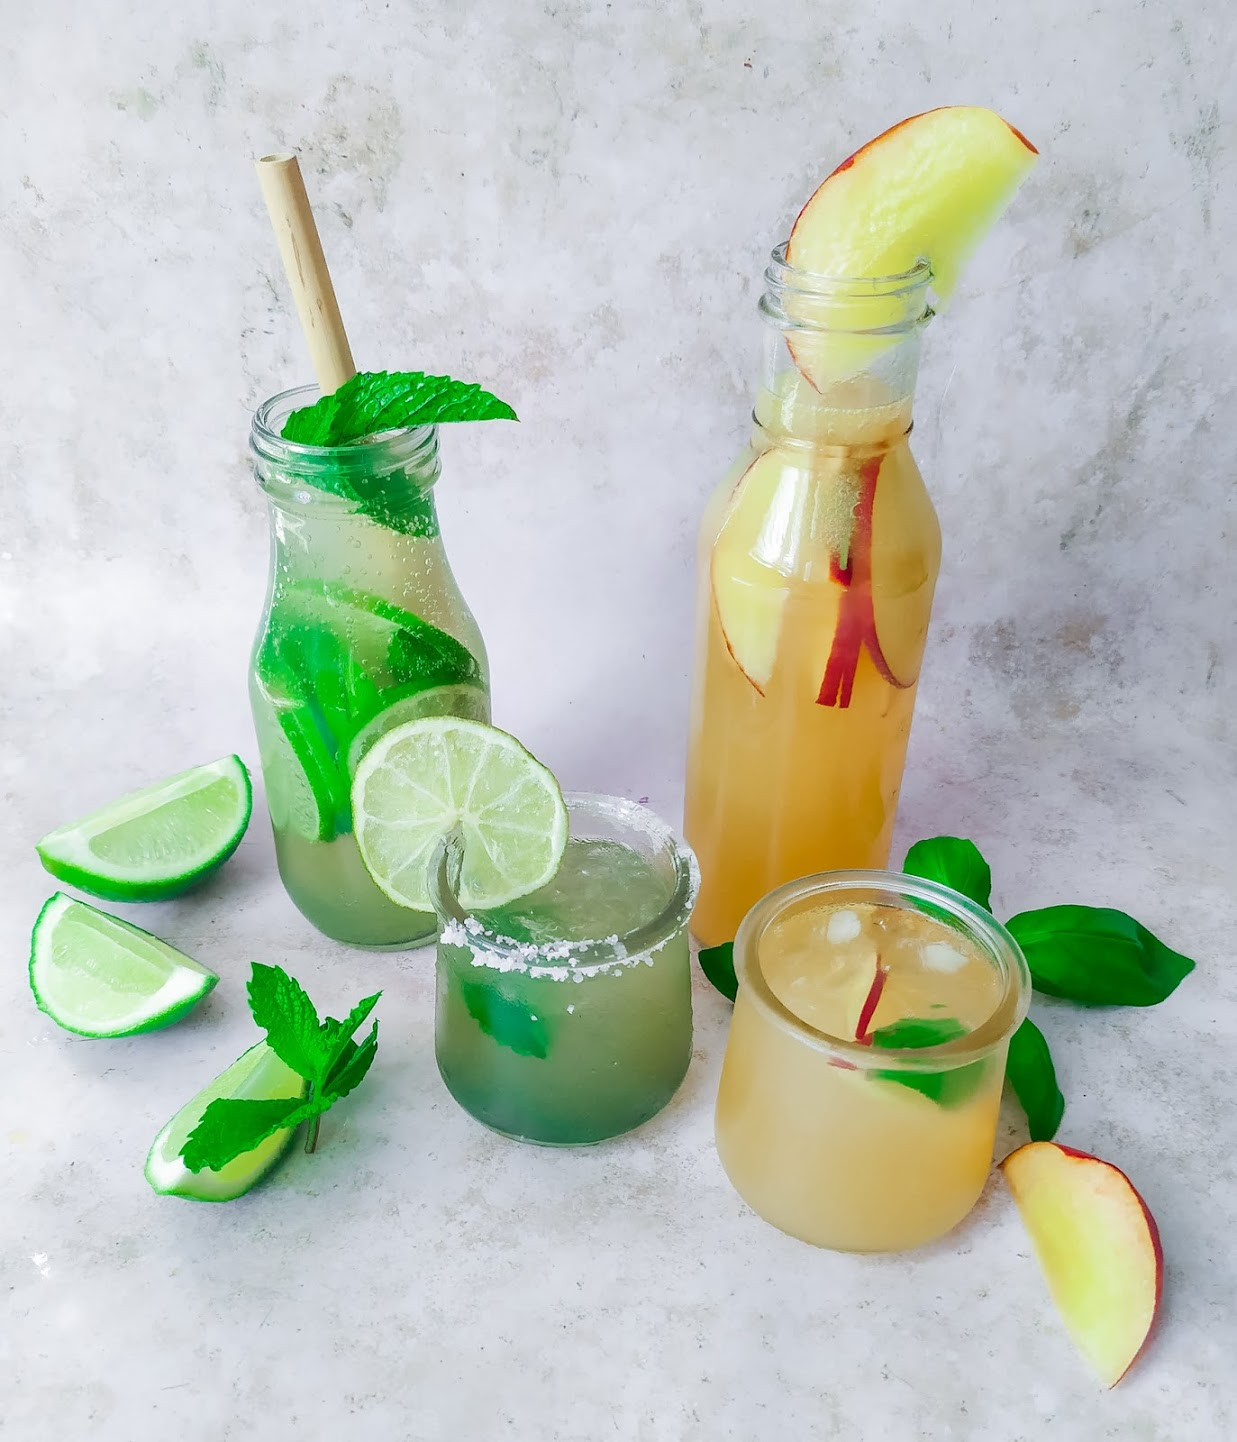 fruity mocktails made from limes and peaches on a white background